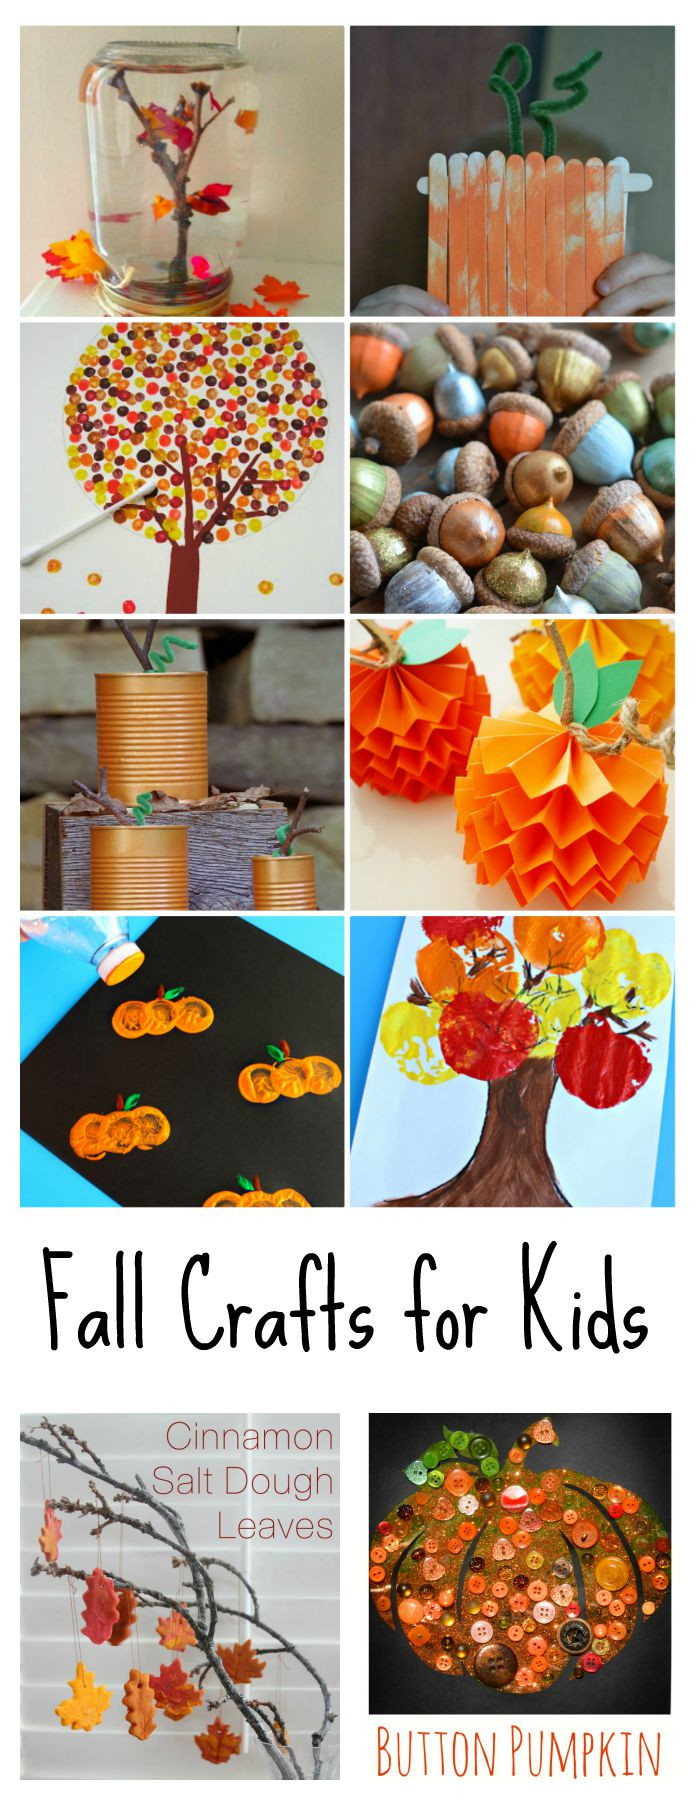 Fall Crafts Ideas For Kids  Fall Crafts for Kids The Idea Room